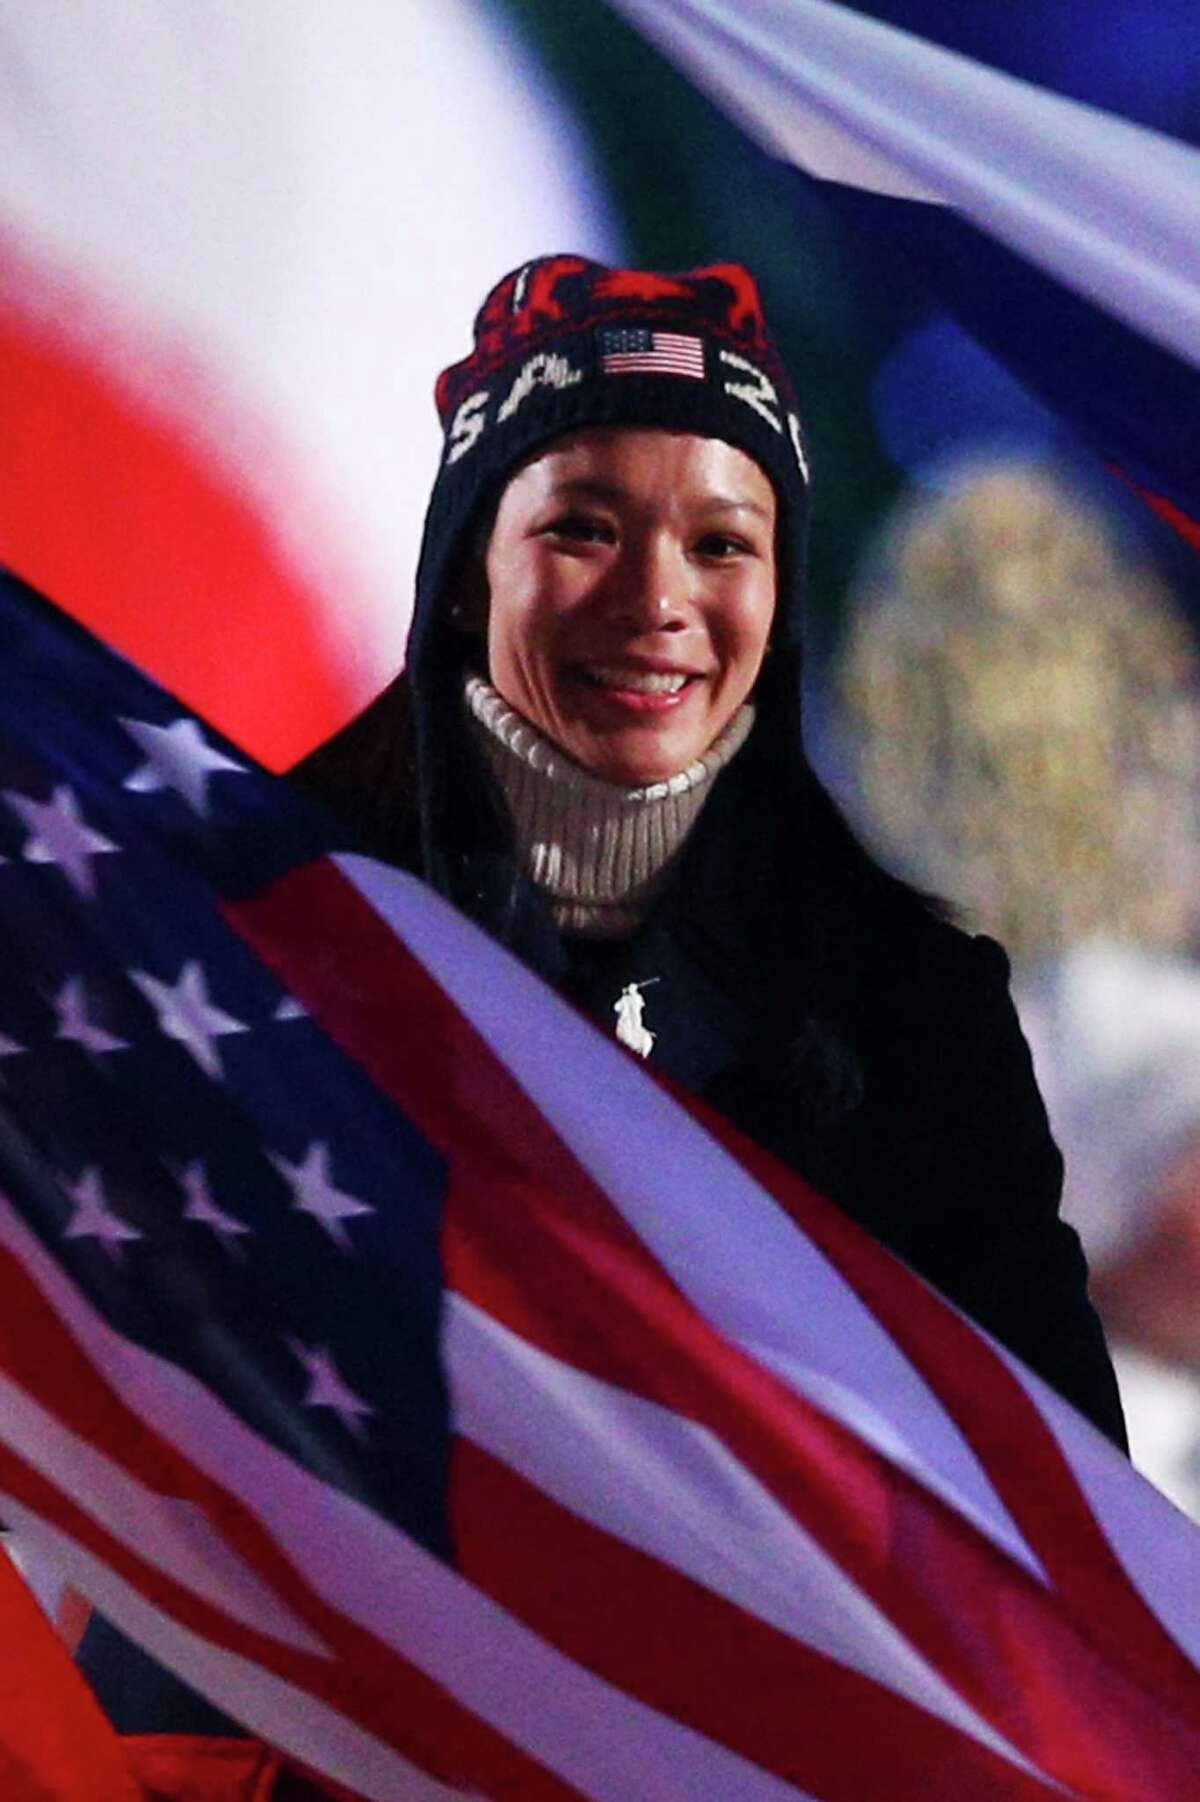 Hockey player Julie Chu of Fairfield entered with the flag during the 2014 Sochi Winter Olympics Closing Ceremony at Fisht Olympic Stadium on February 23, 2014 in Sochi, Russia.